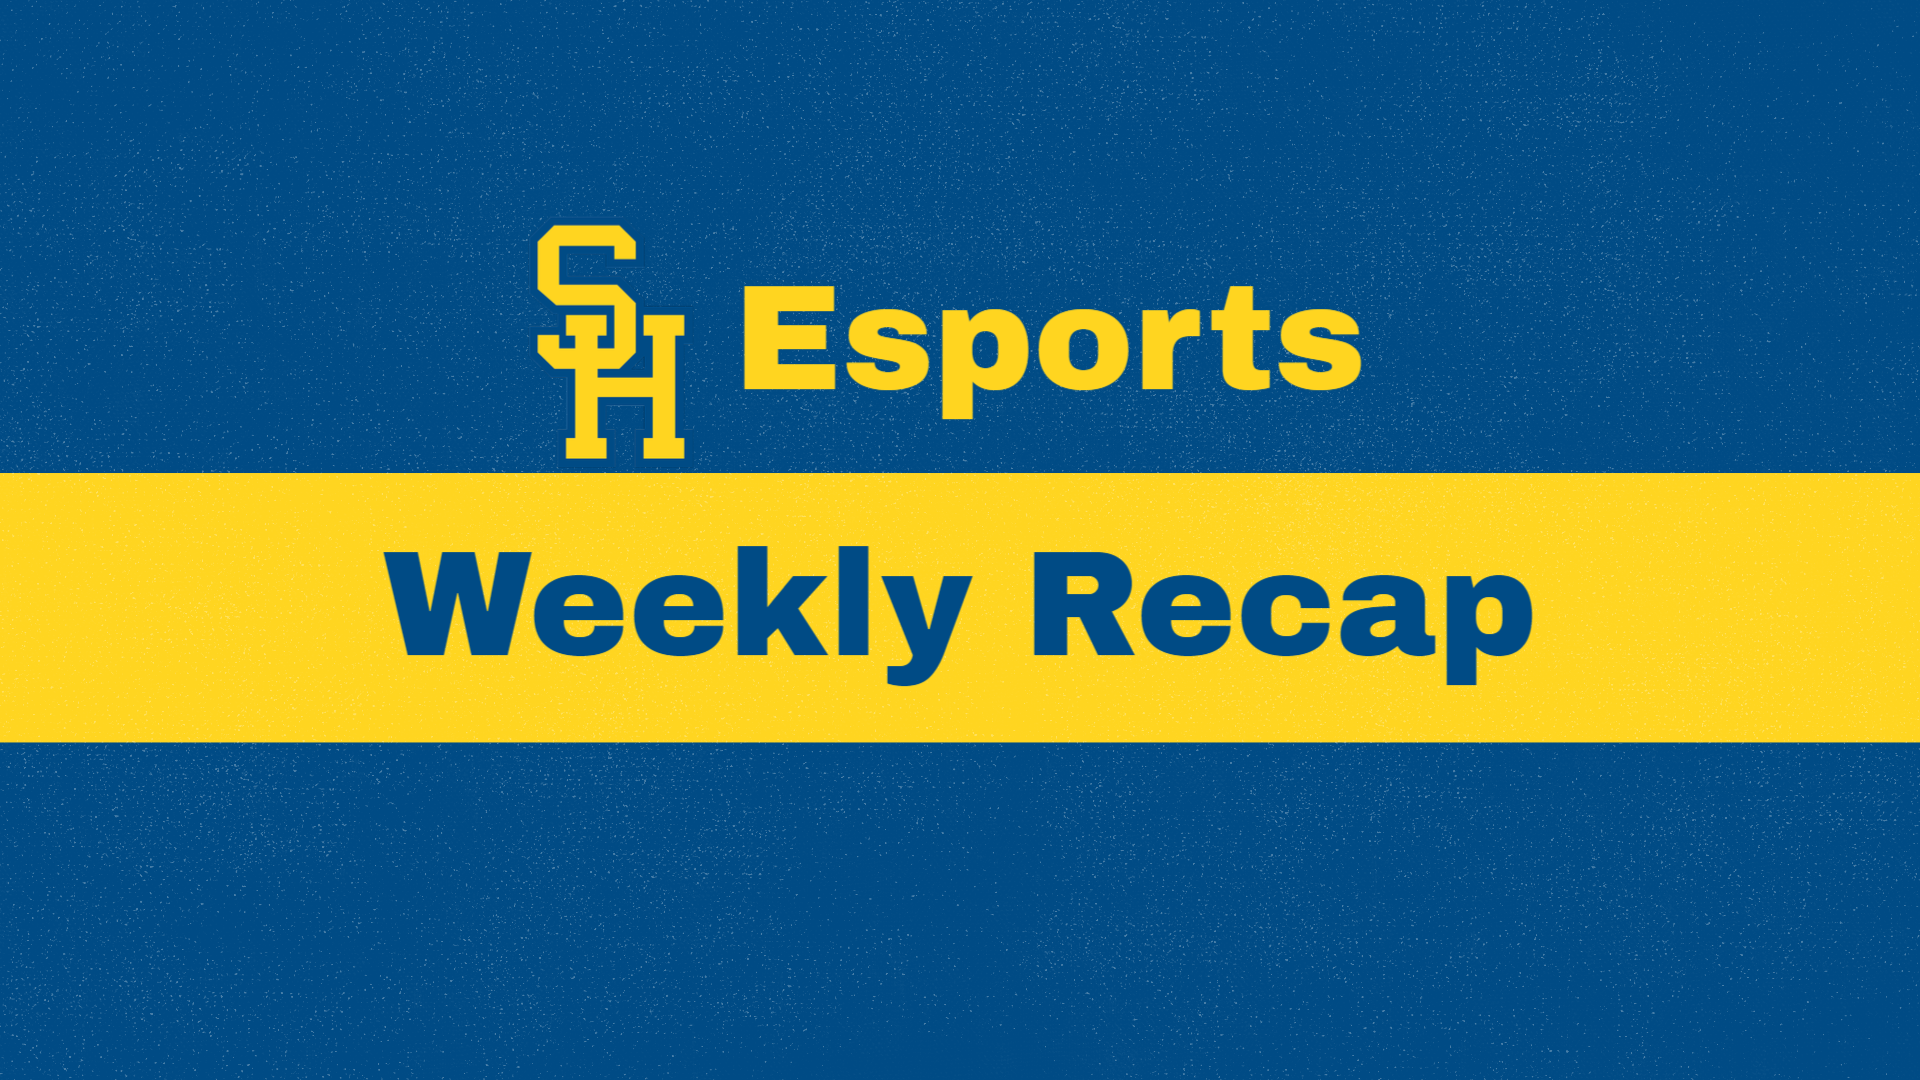 Esports Weekly Recap: Smash Bros., FIFA, Overwatch, & Madden All Compete; League of Legends to Start This Week